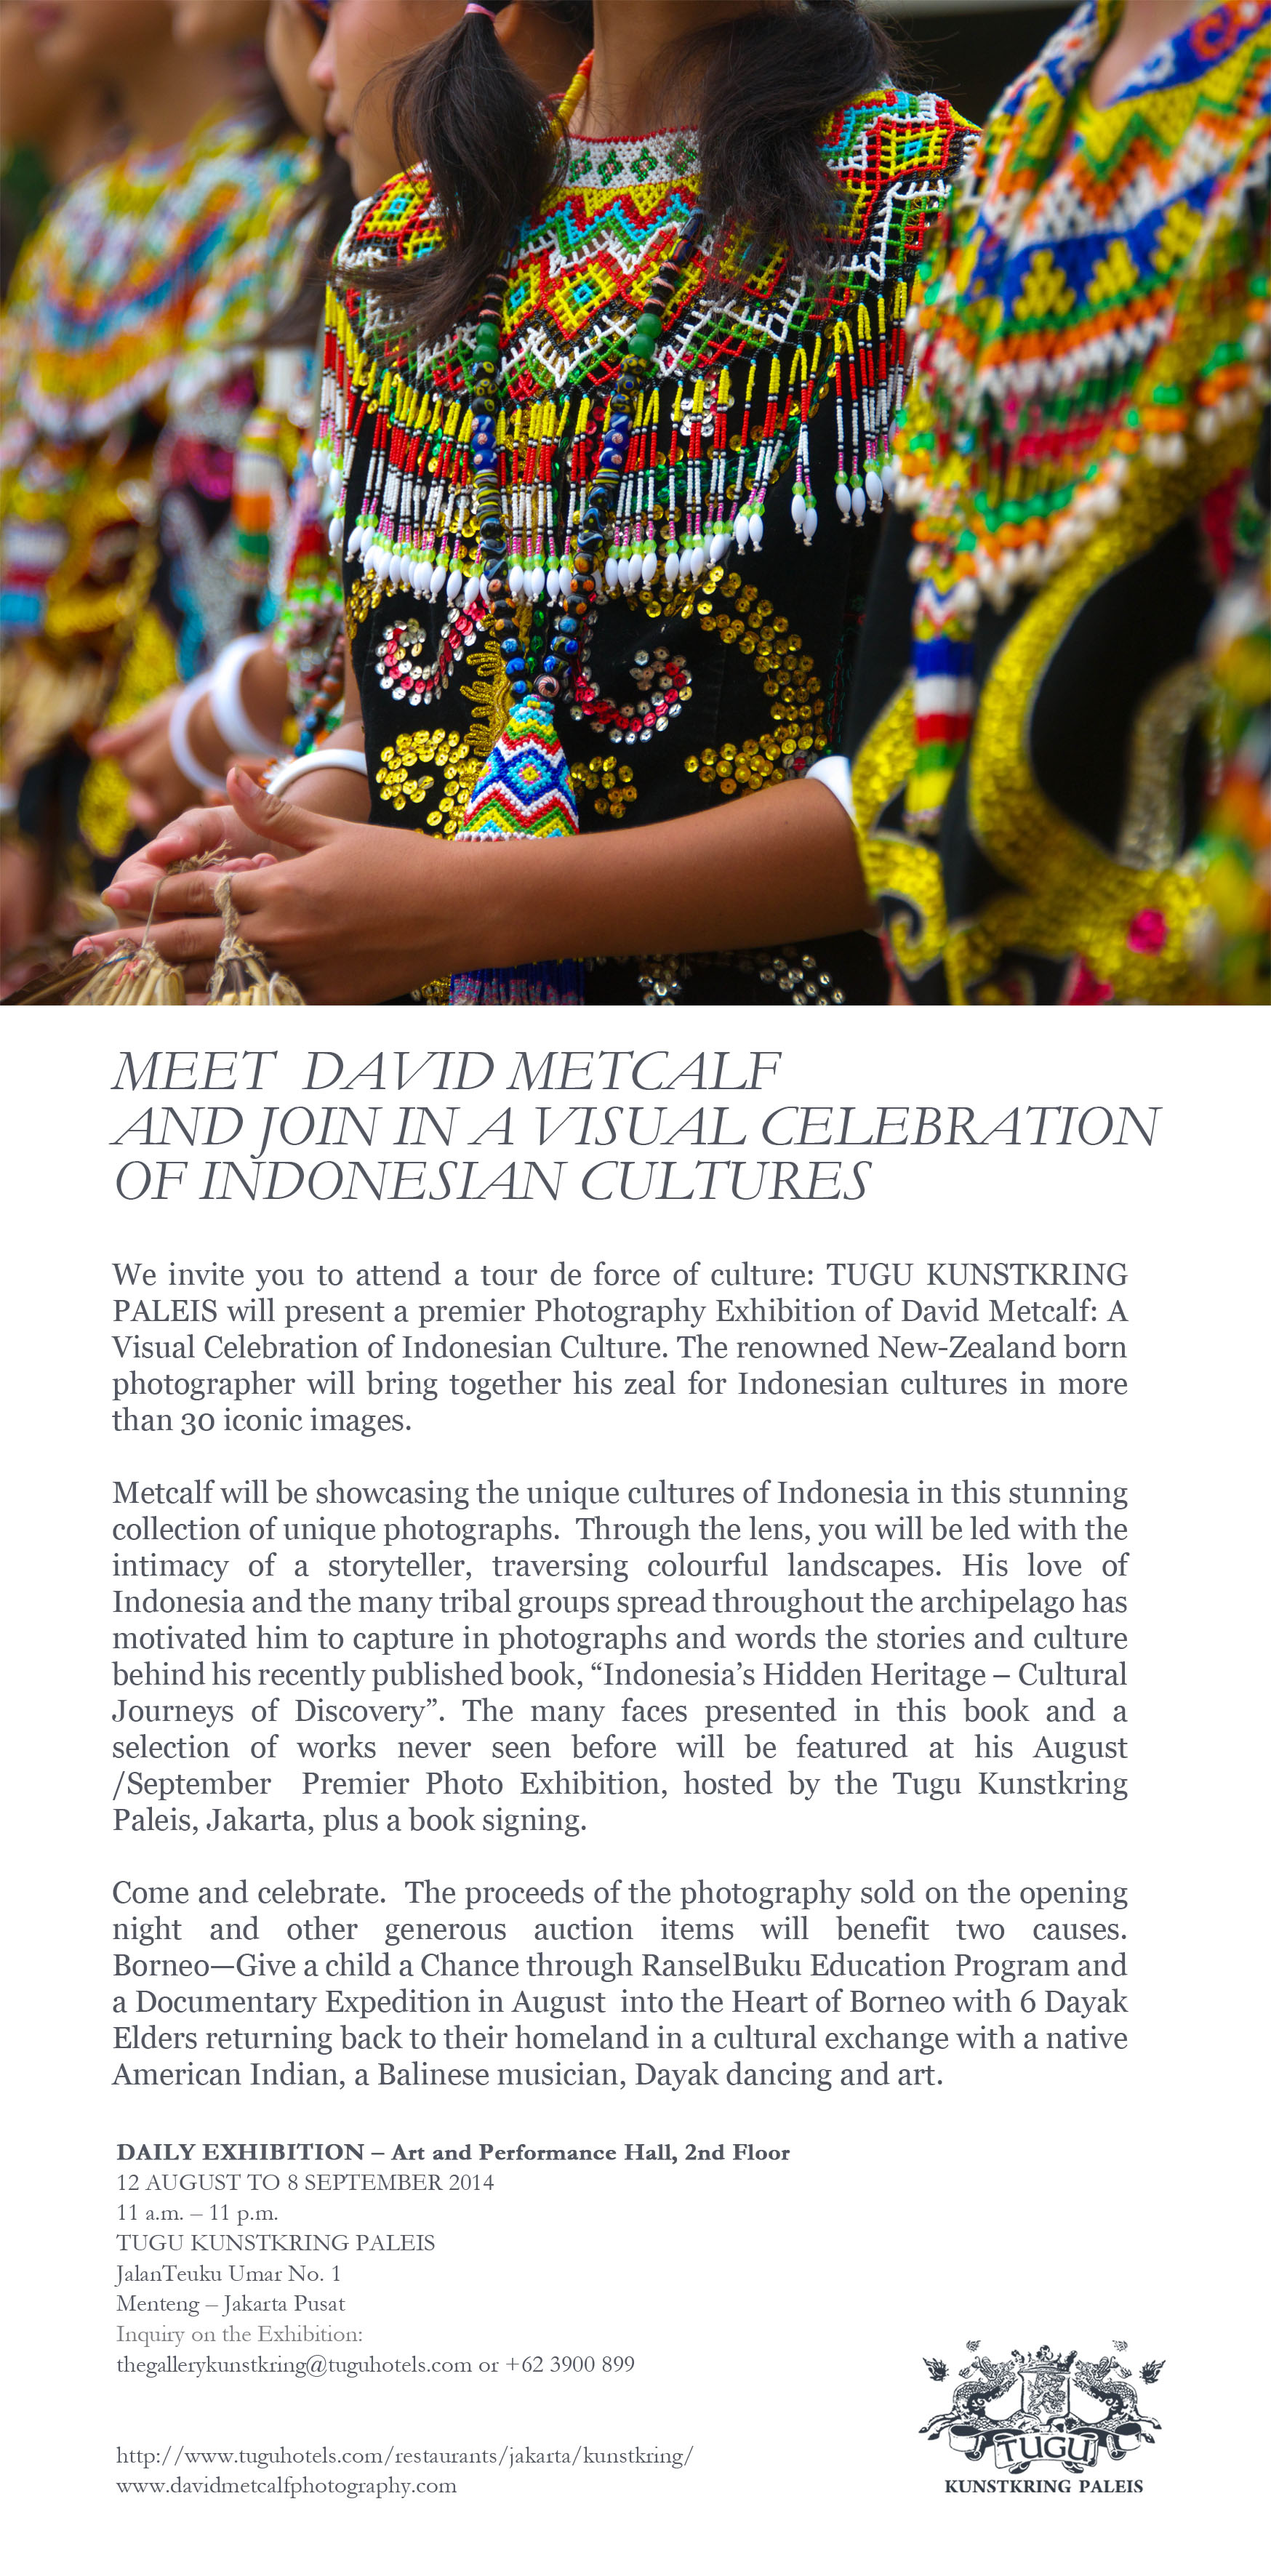 meet david metcalf and join in a visual celebration of indonesian cultures - tugu kunstkring paleis